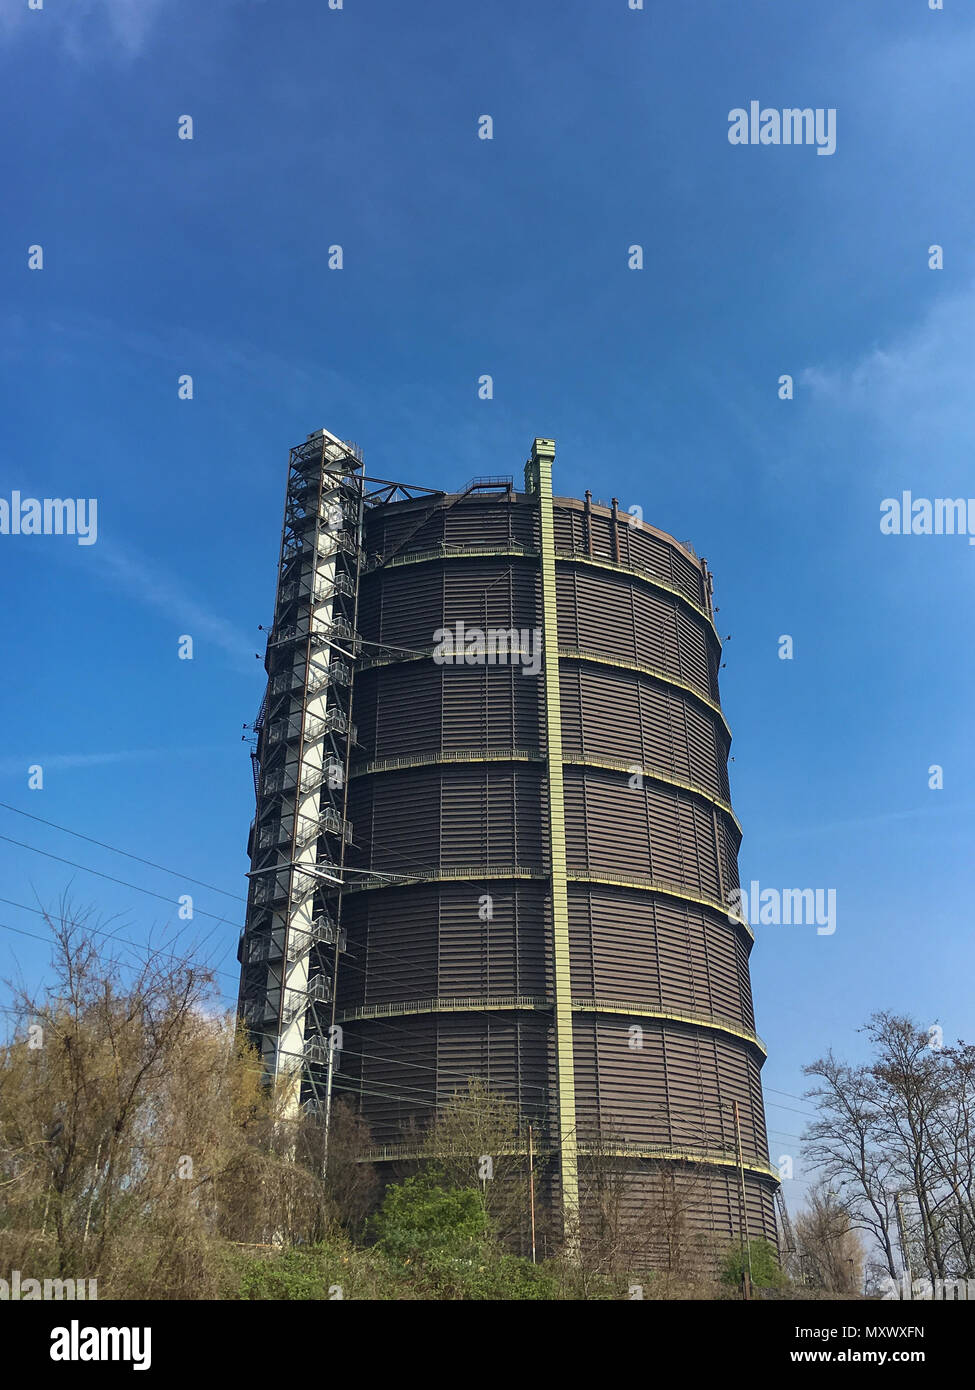 The Gasometer is an industrial monument and landmark of the city of Oberhausen. The former gas holder was built in the 1920s and is now a place for cu - Stock Image